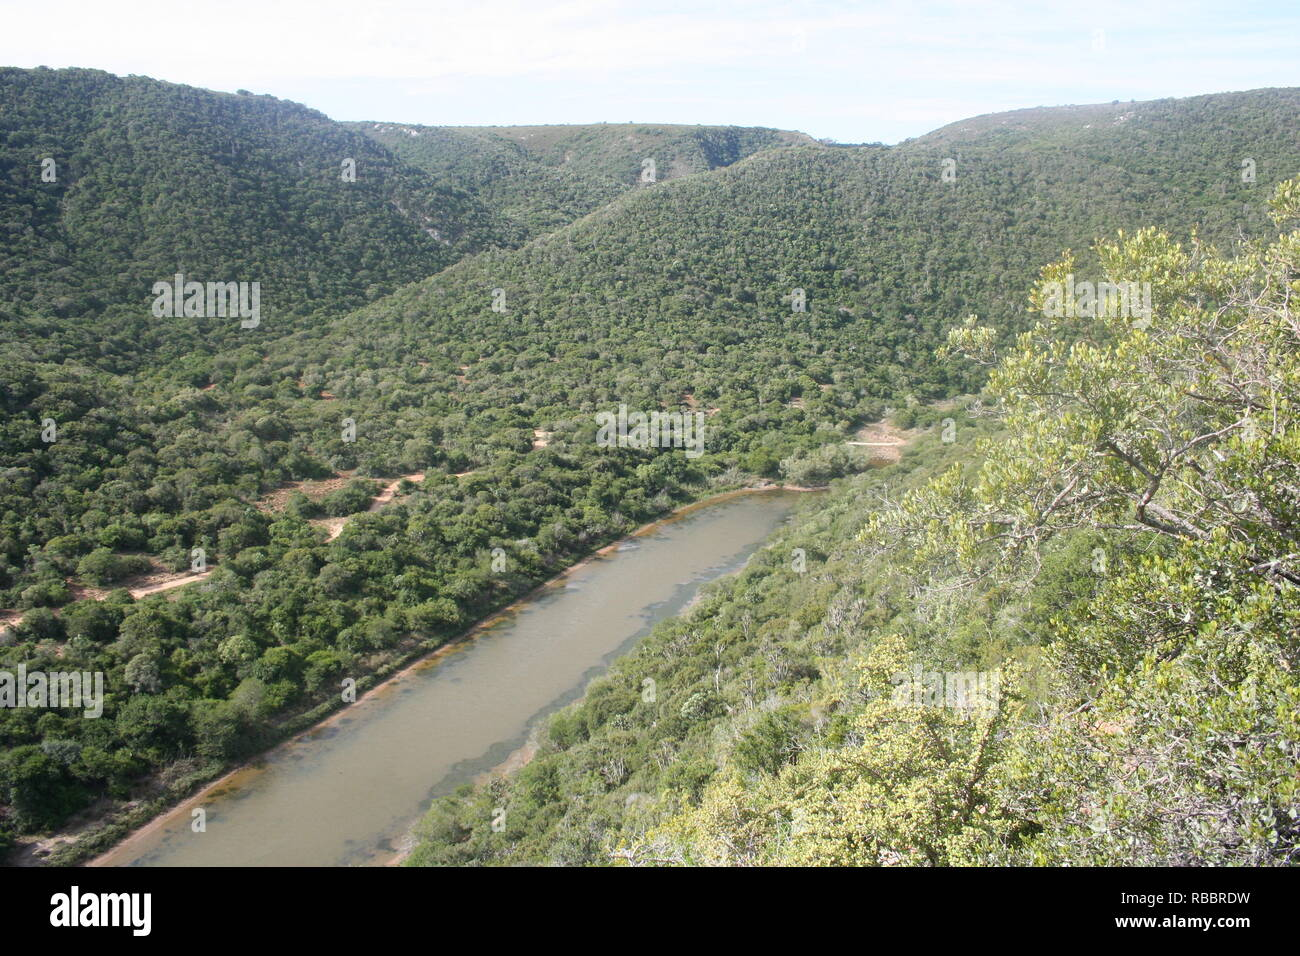 Outlook over Bushmansriver from a hilltop in the Eastern Cape - Stock Image